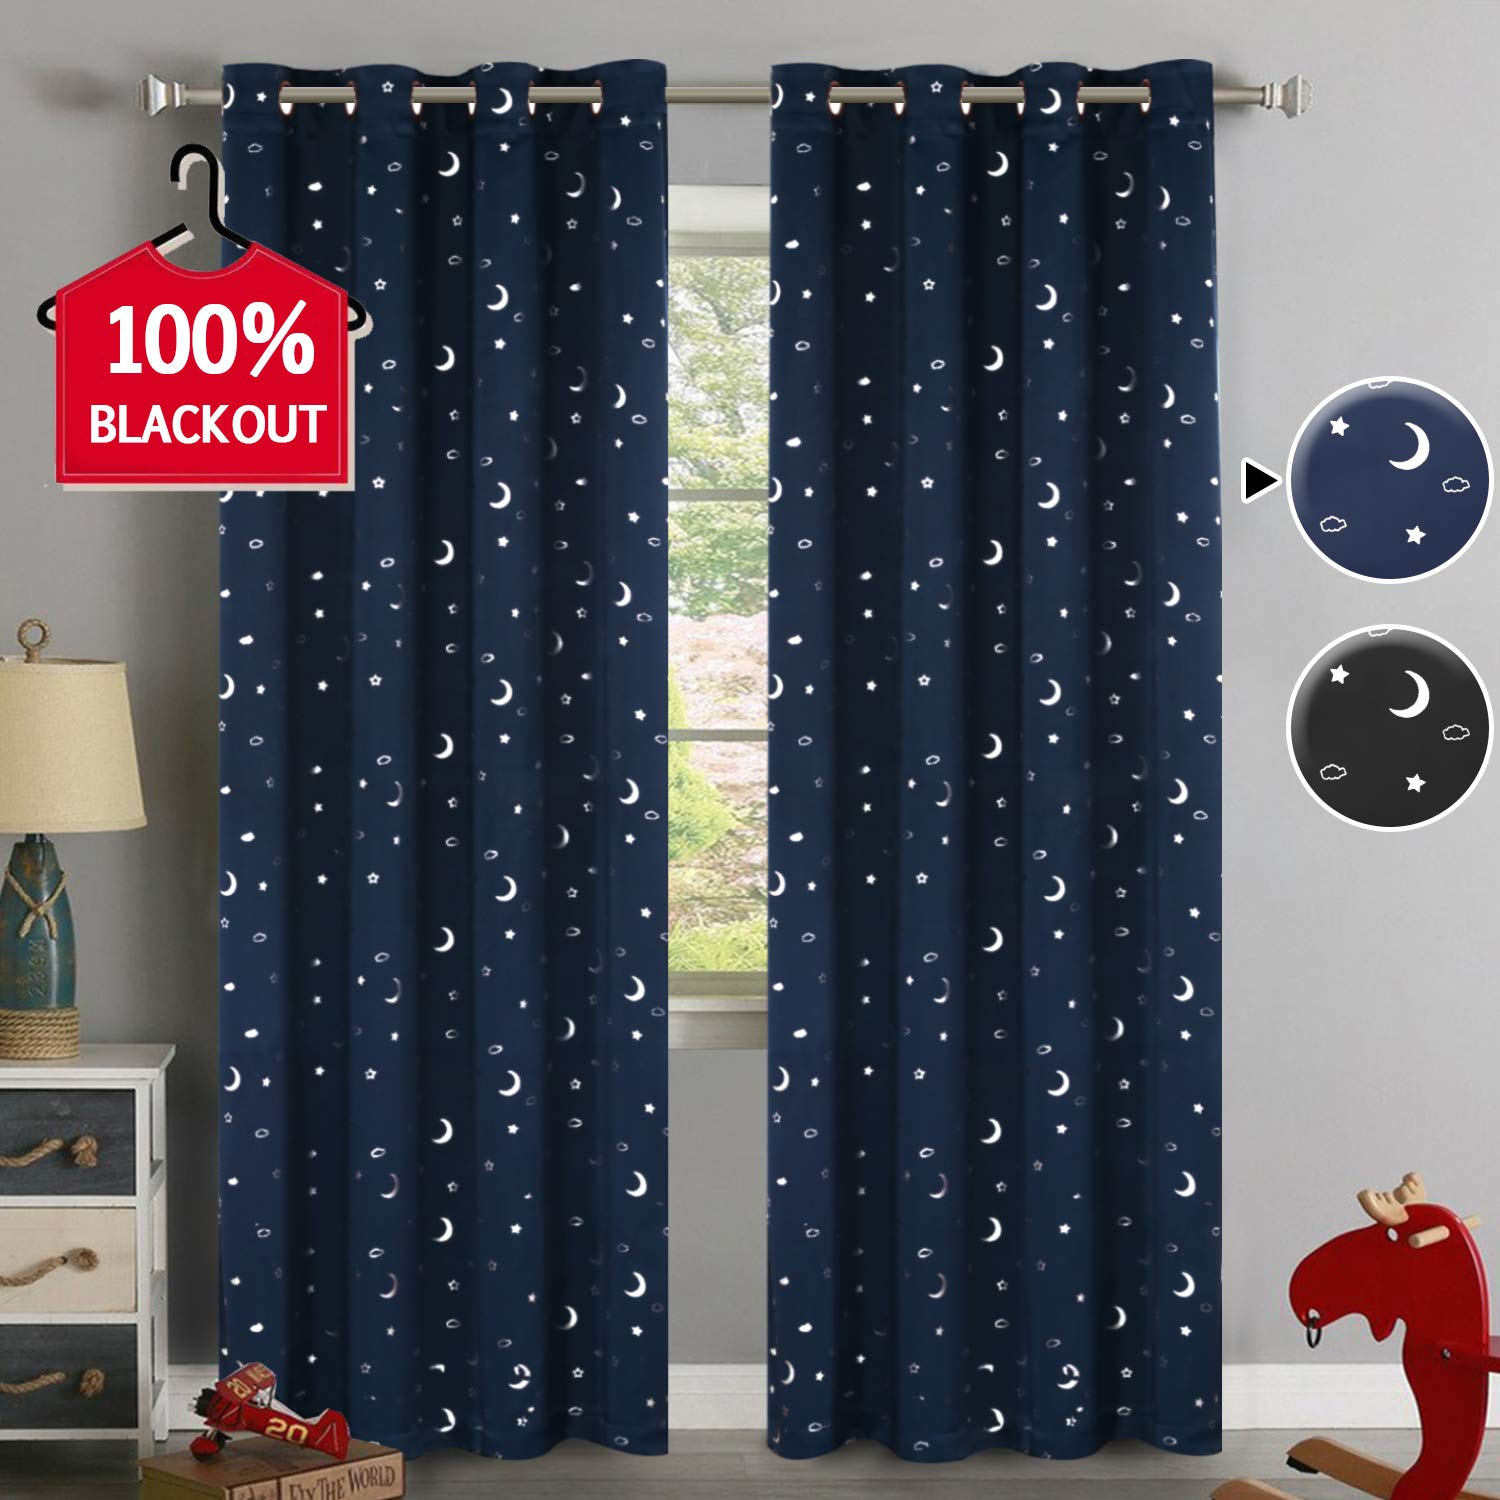 "100% Blackout Curtains Starry Night Twinkle Moon and Star Pattern Galaxy Room Decor Thermal Insulated Nursery Window Drape with Grommet for Kid's Room Sold 2 Panels (Each 52"" x 84"", Navy)"